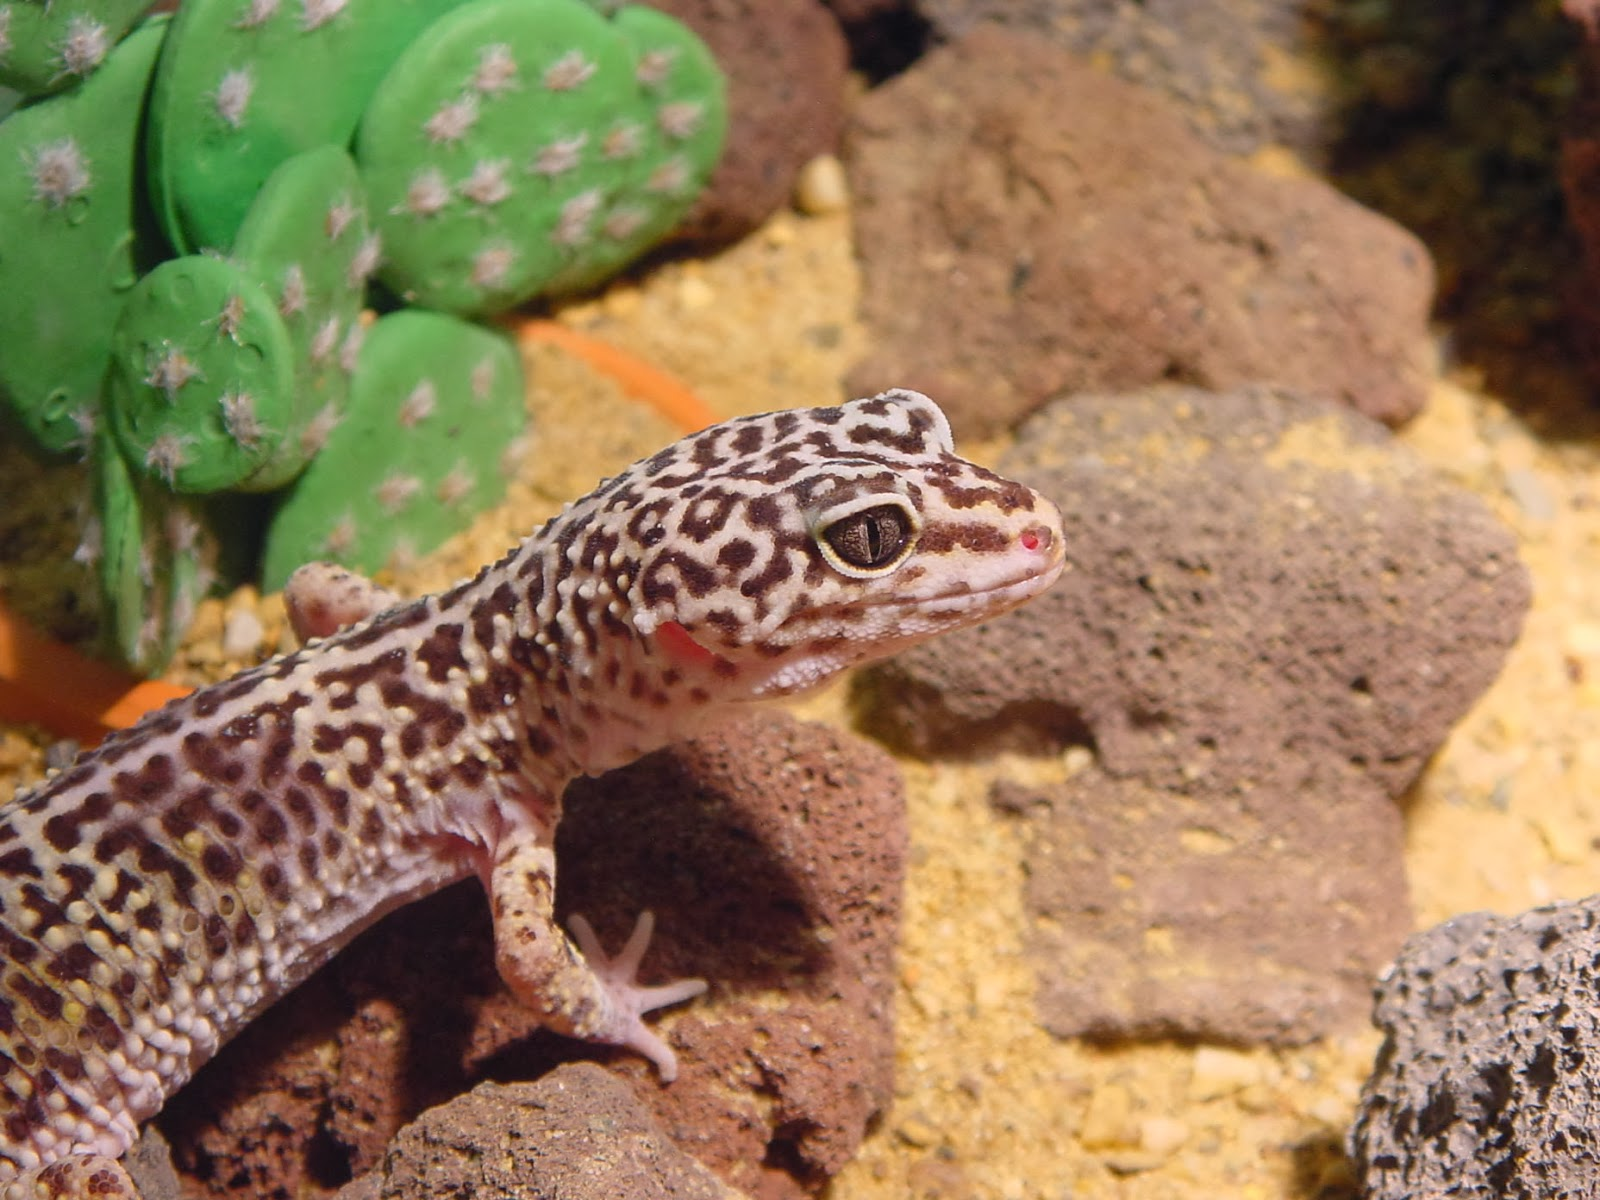 Common leopard gecko